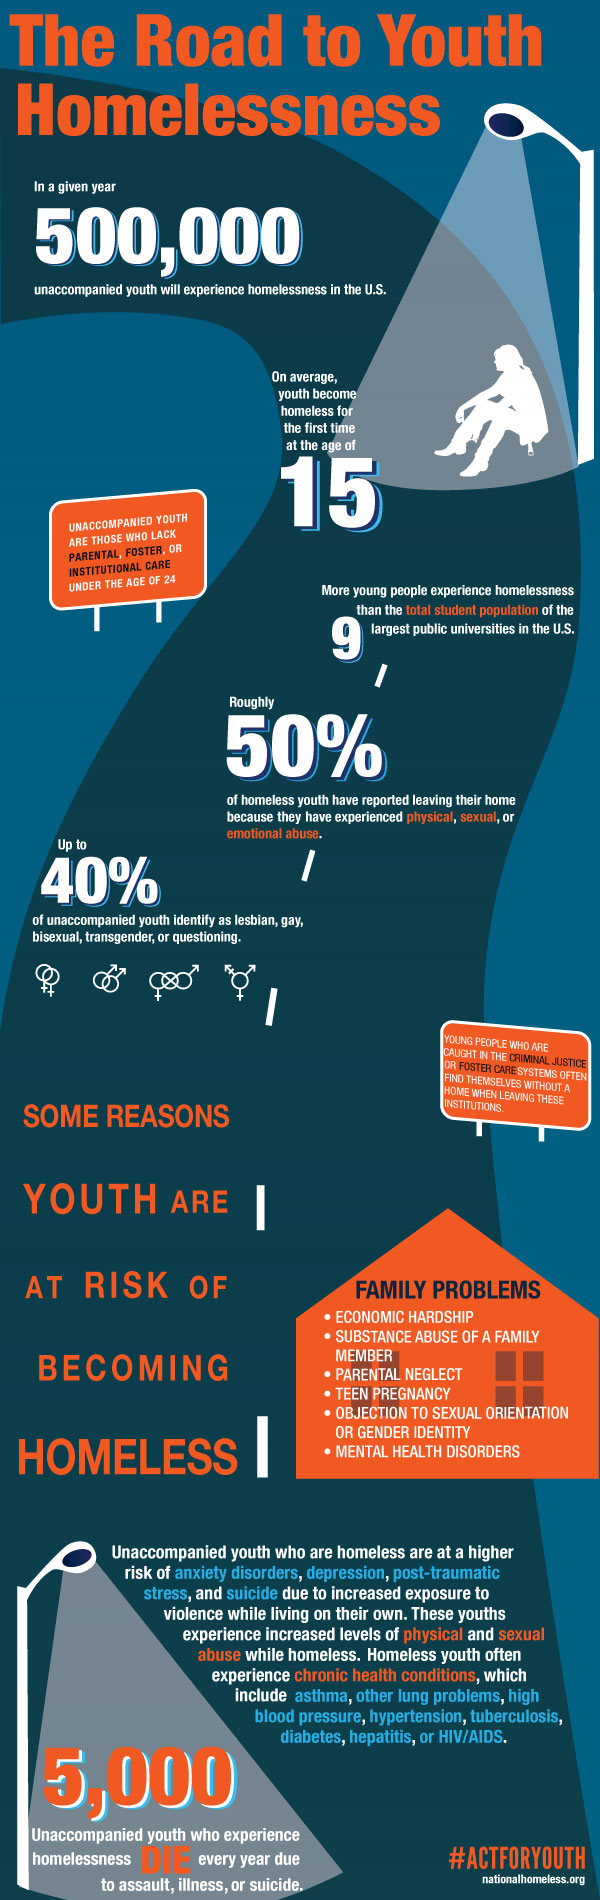 The Road to Youth Homelessness by the National Coalition for the Homeless